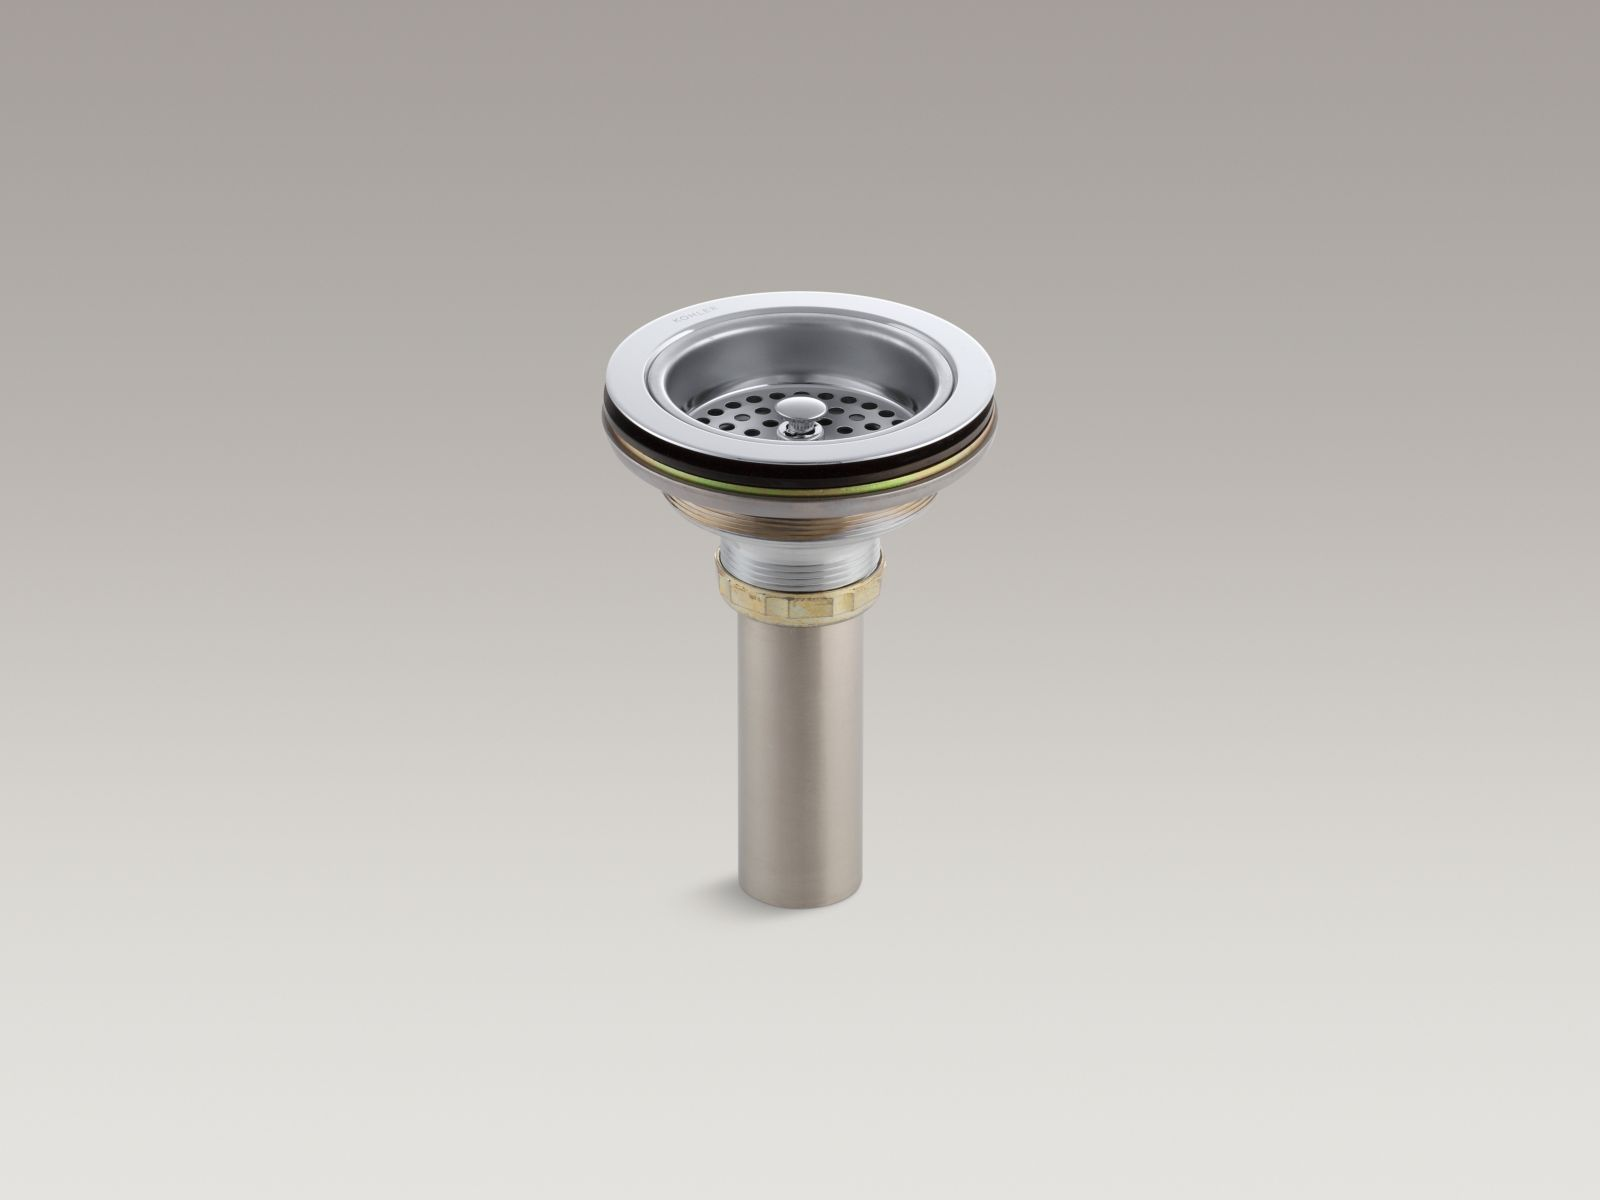 Kohler K-8801-CP Brass Basket Strainer with Tailpiece from the Duostrainer Collection, Polished Chrome